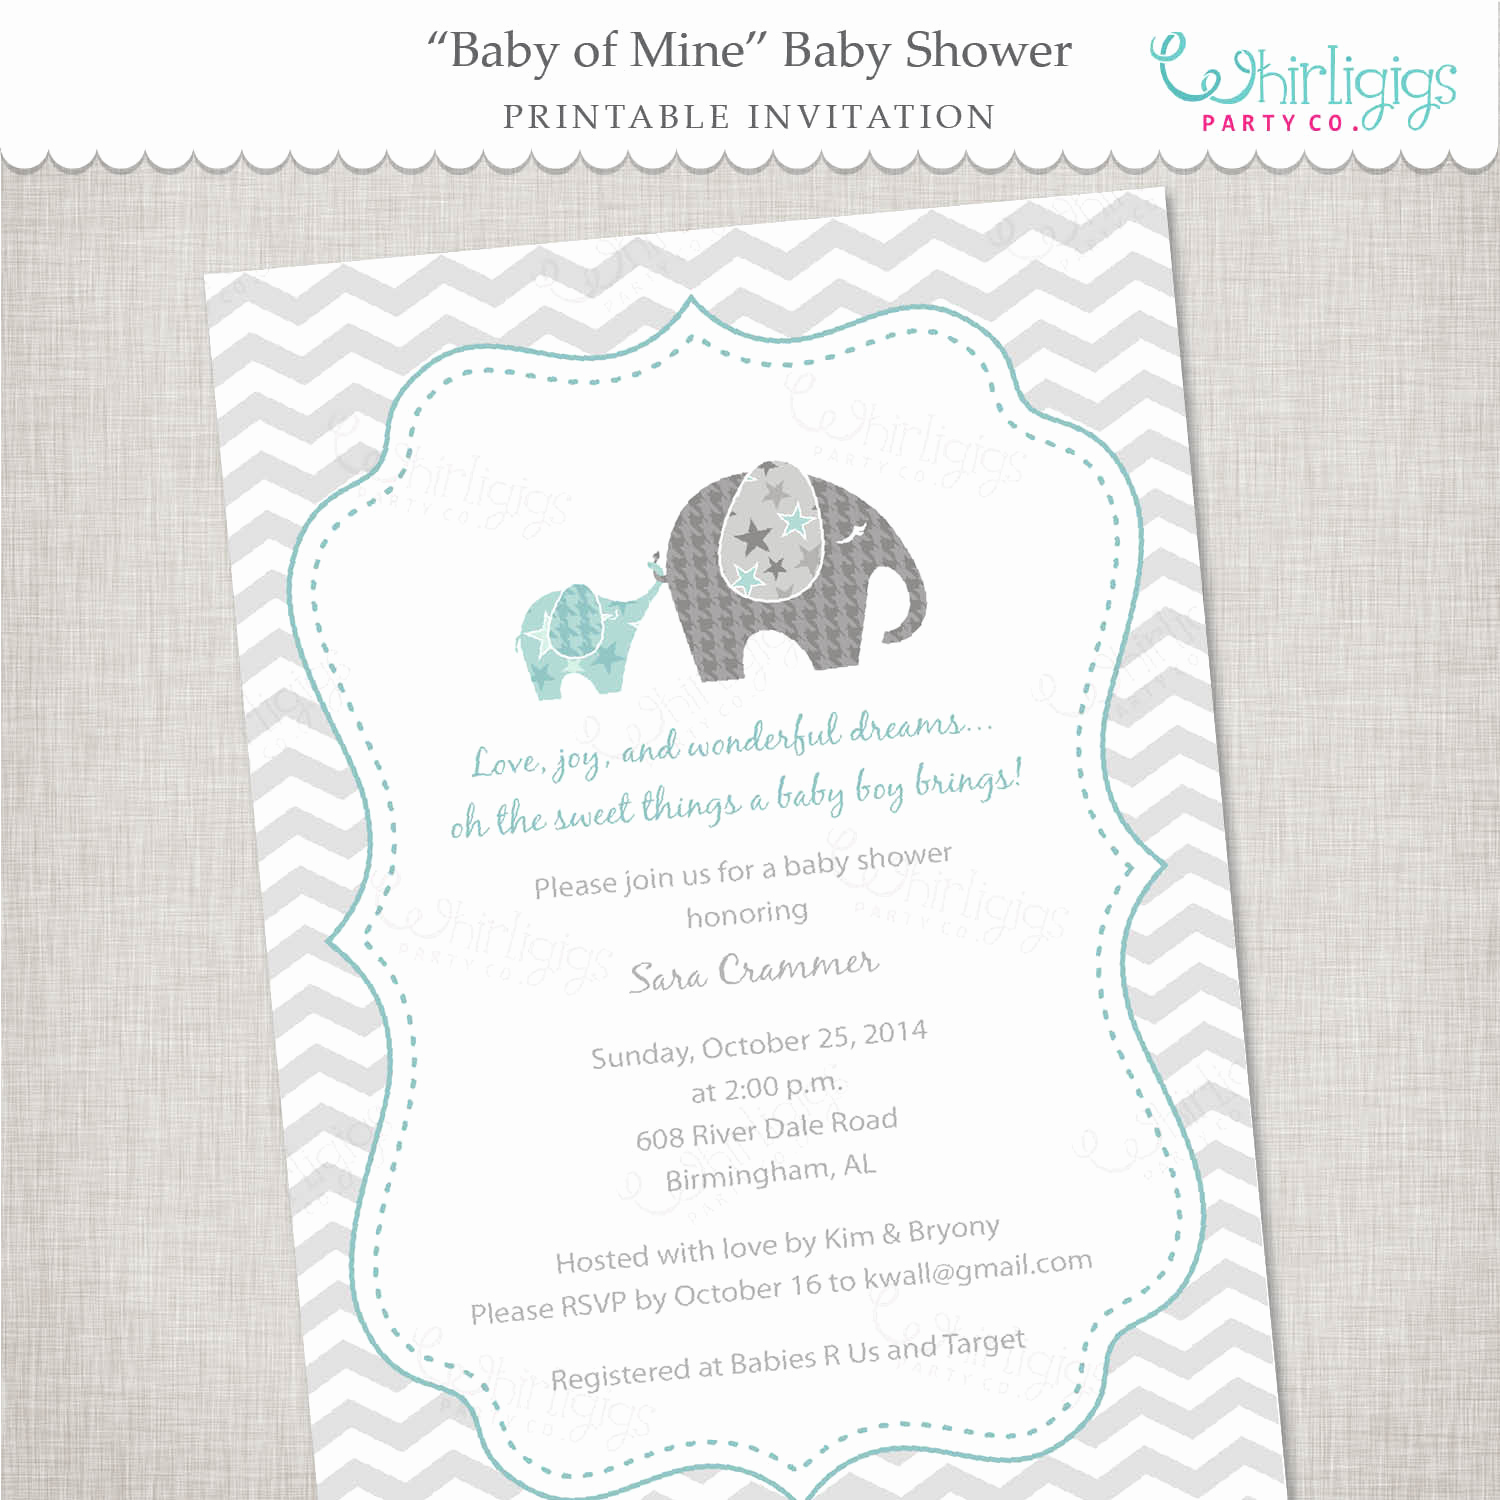 Elephant Invitation Baby Shower New Elephant Baby Shower Invitation Baby Of Mine